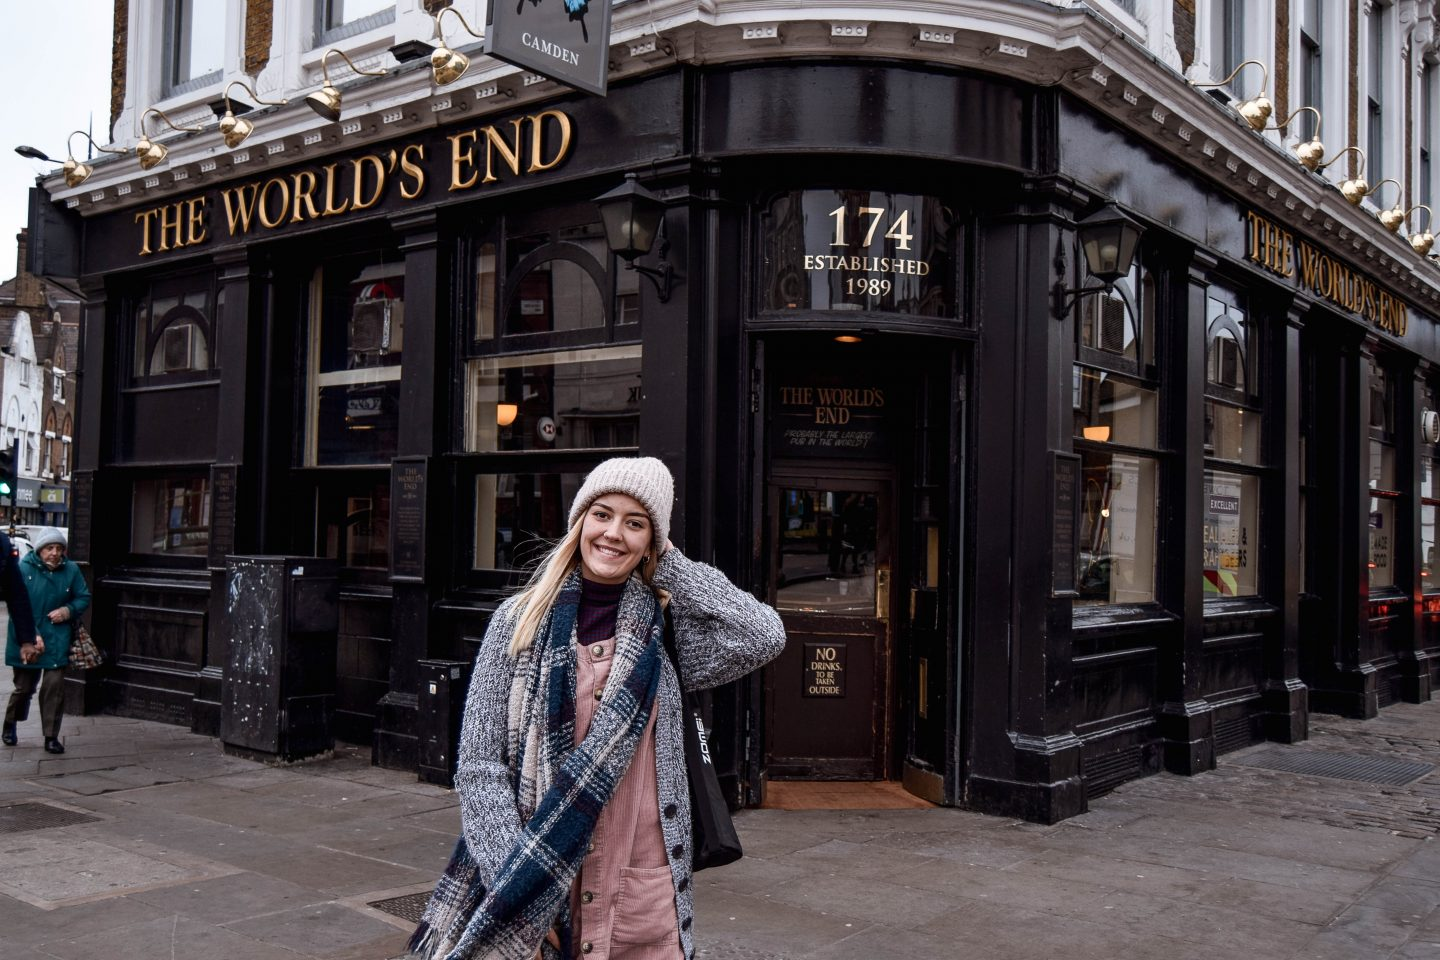 The World's End Pub 4 Day London Itinerary